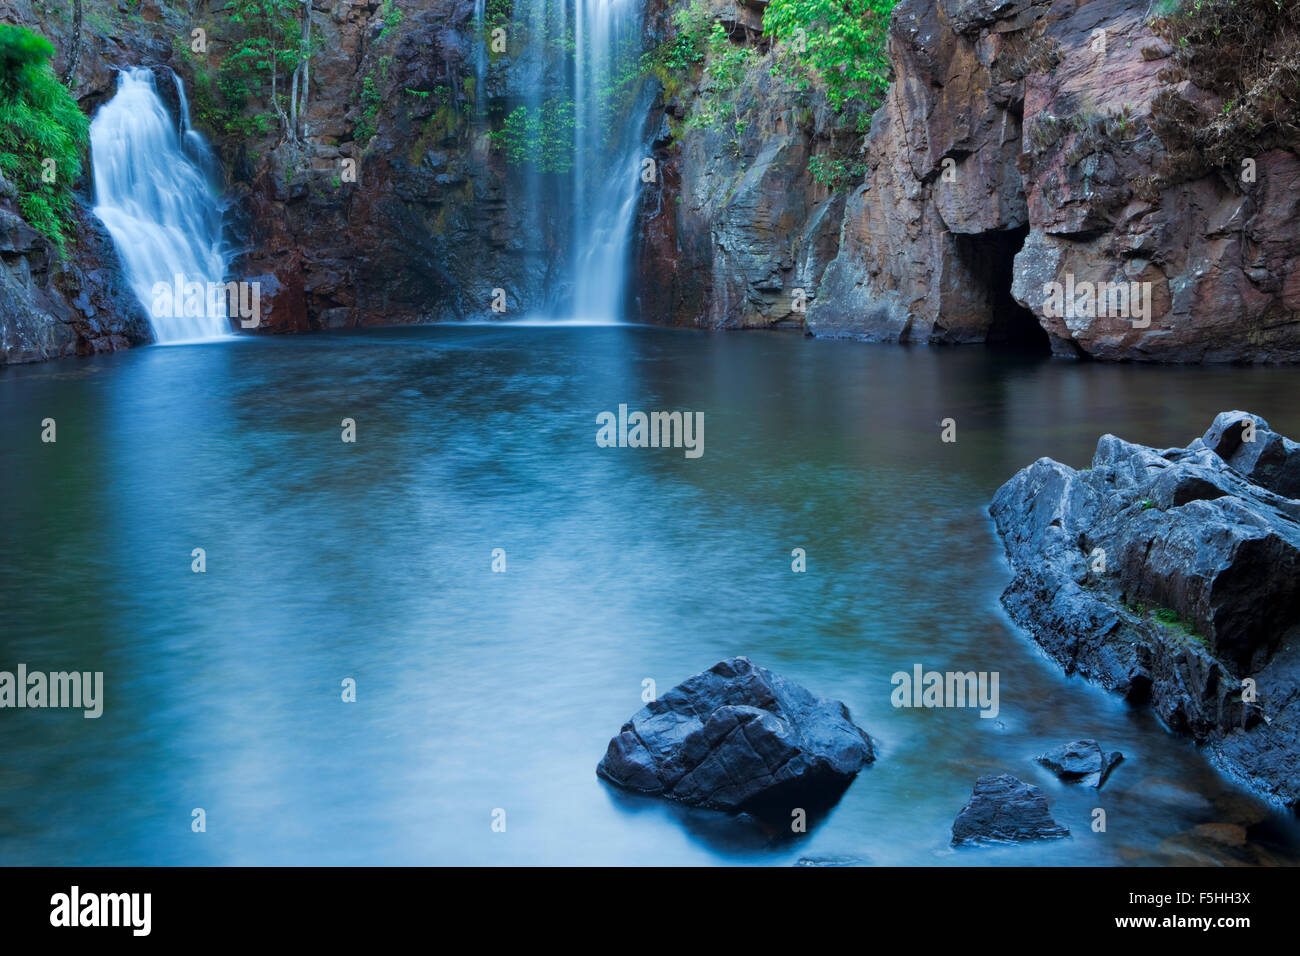 The Florence Falls in Litchfield National Park, Northern Territory, Australia. Photographed at dawn. - Stock Image